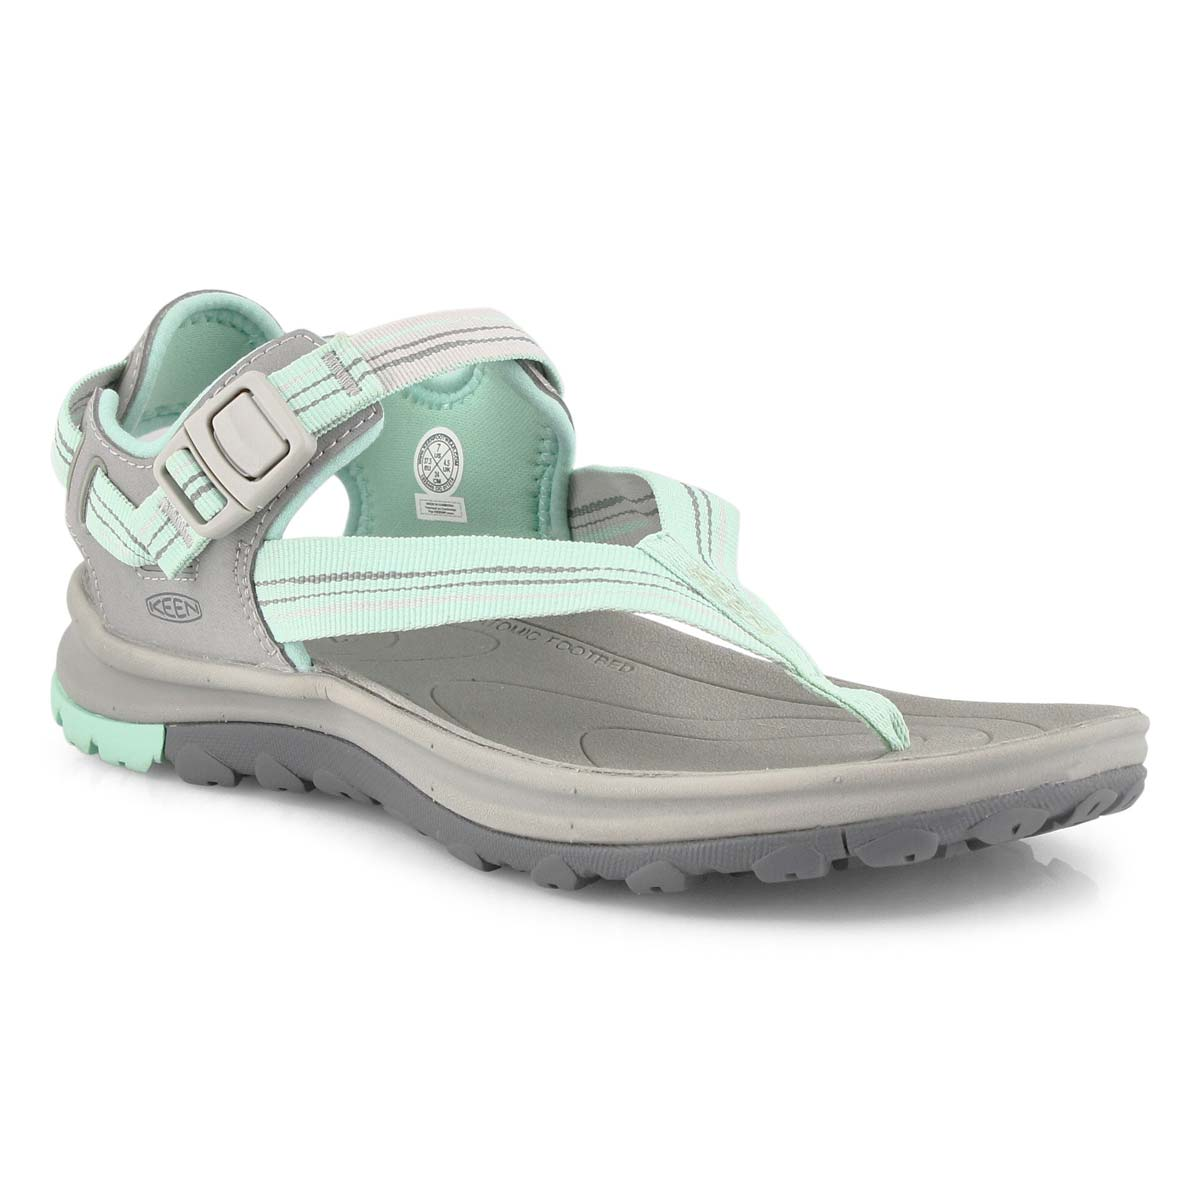 Women's Terradora II Toe Post Sandal - Grey/Ocean